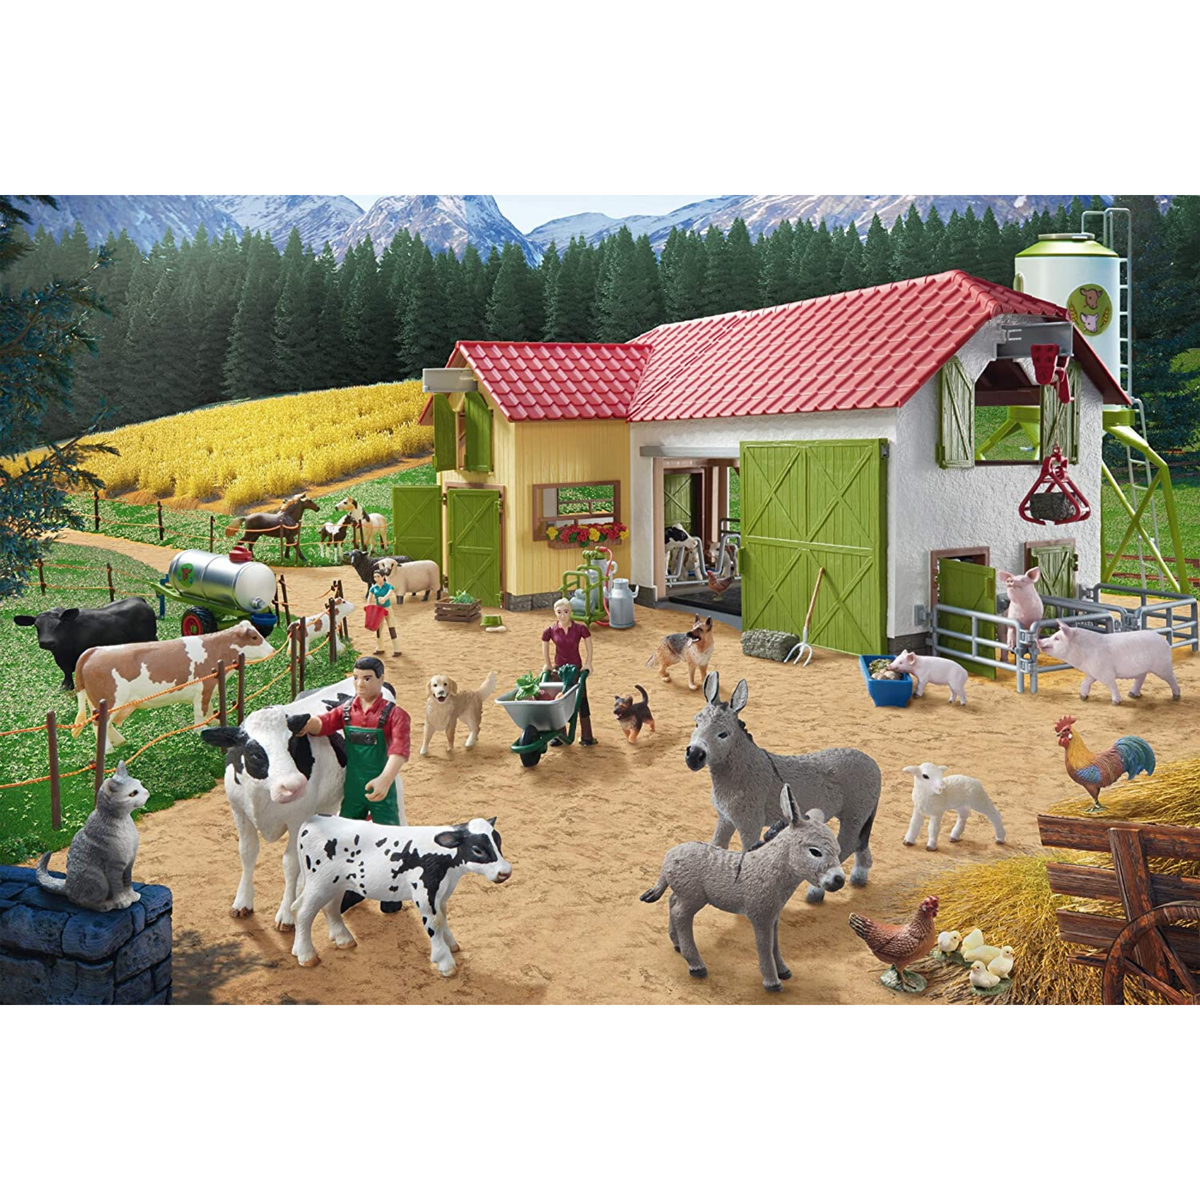 Schmidt A Day At The Farm Puzzle with Schleich Figures